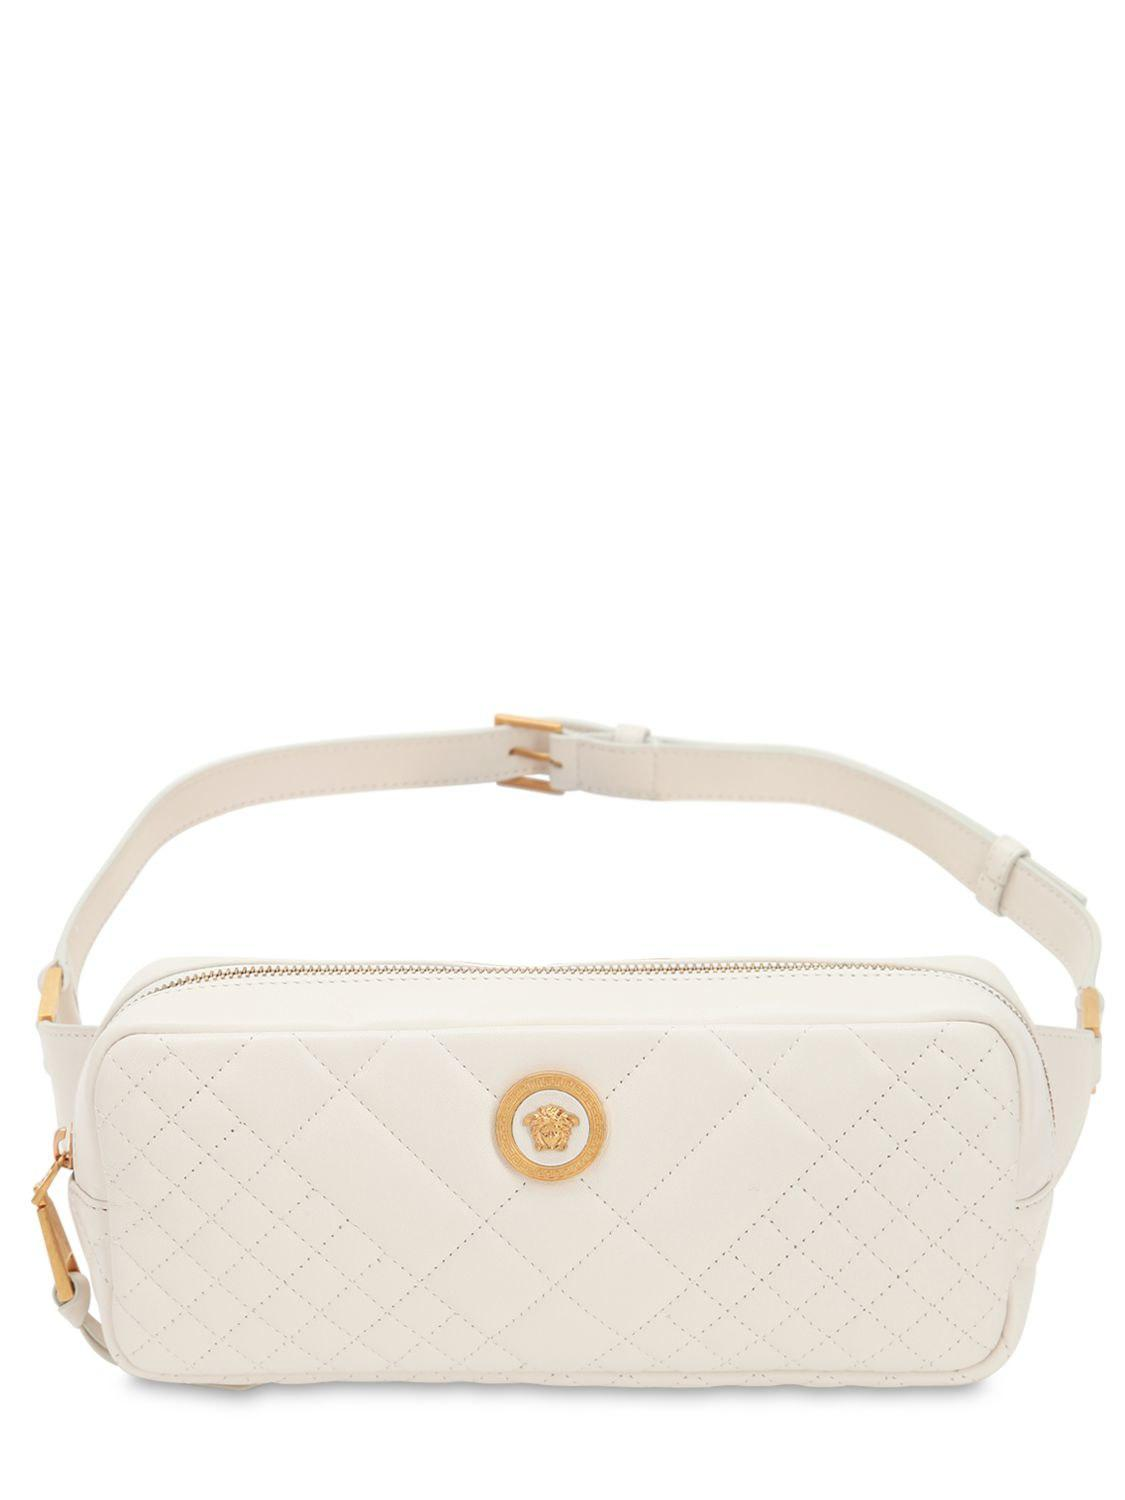 d7b5f76e06bb Versace Icon Quilted Leather Belt Bag in White - Lyst